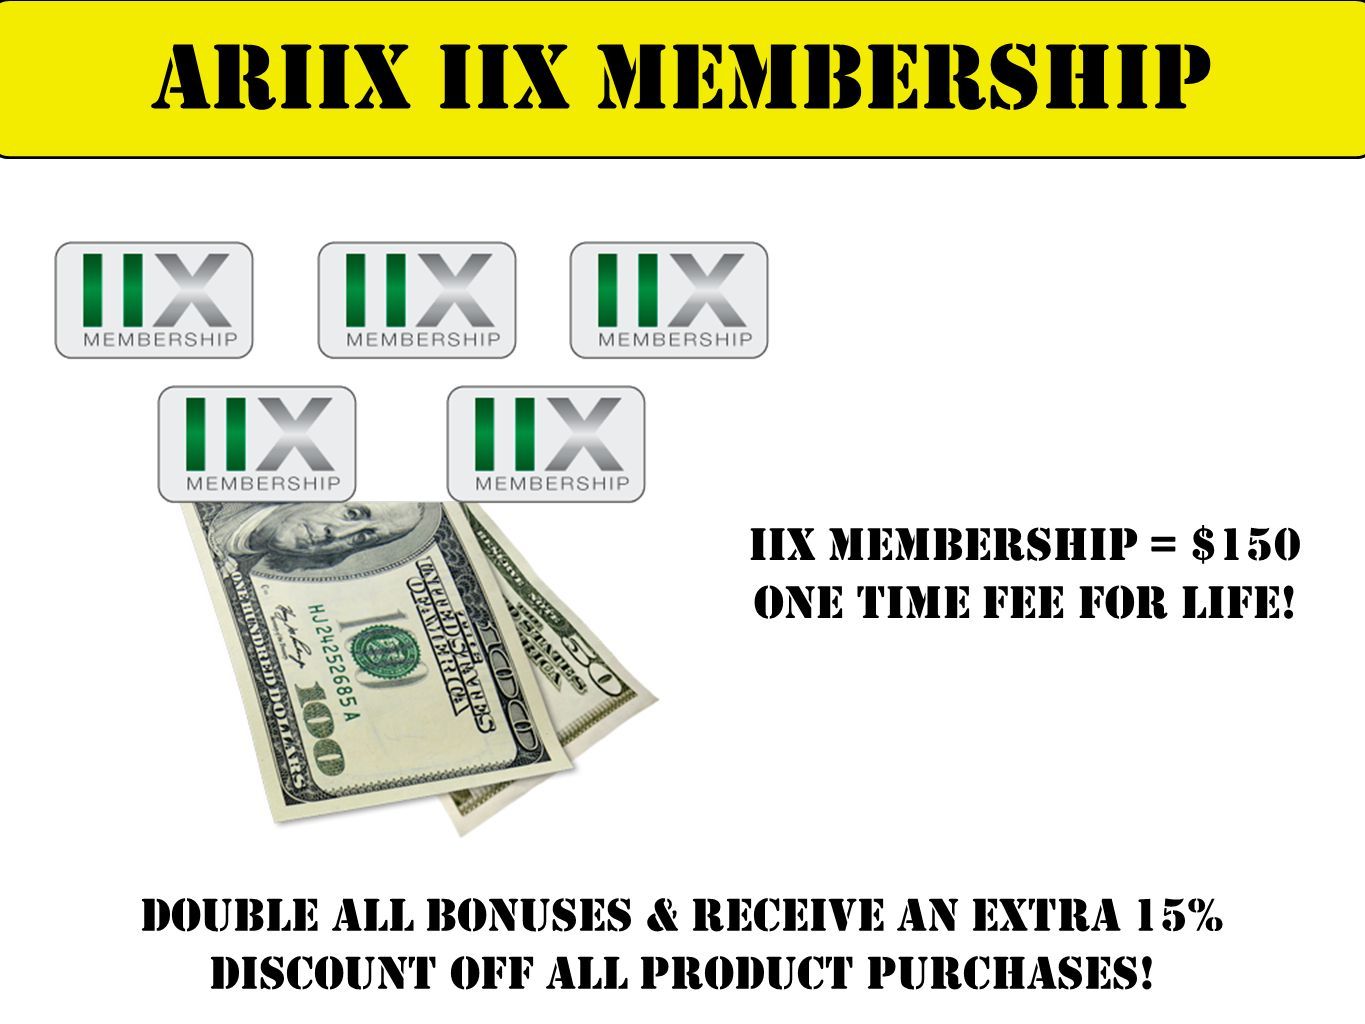 ARIIX IIX MEMBERSHIP IIX Membership = $150 one time fee for life!